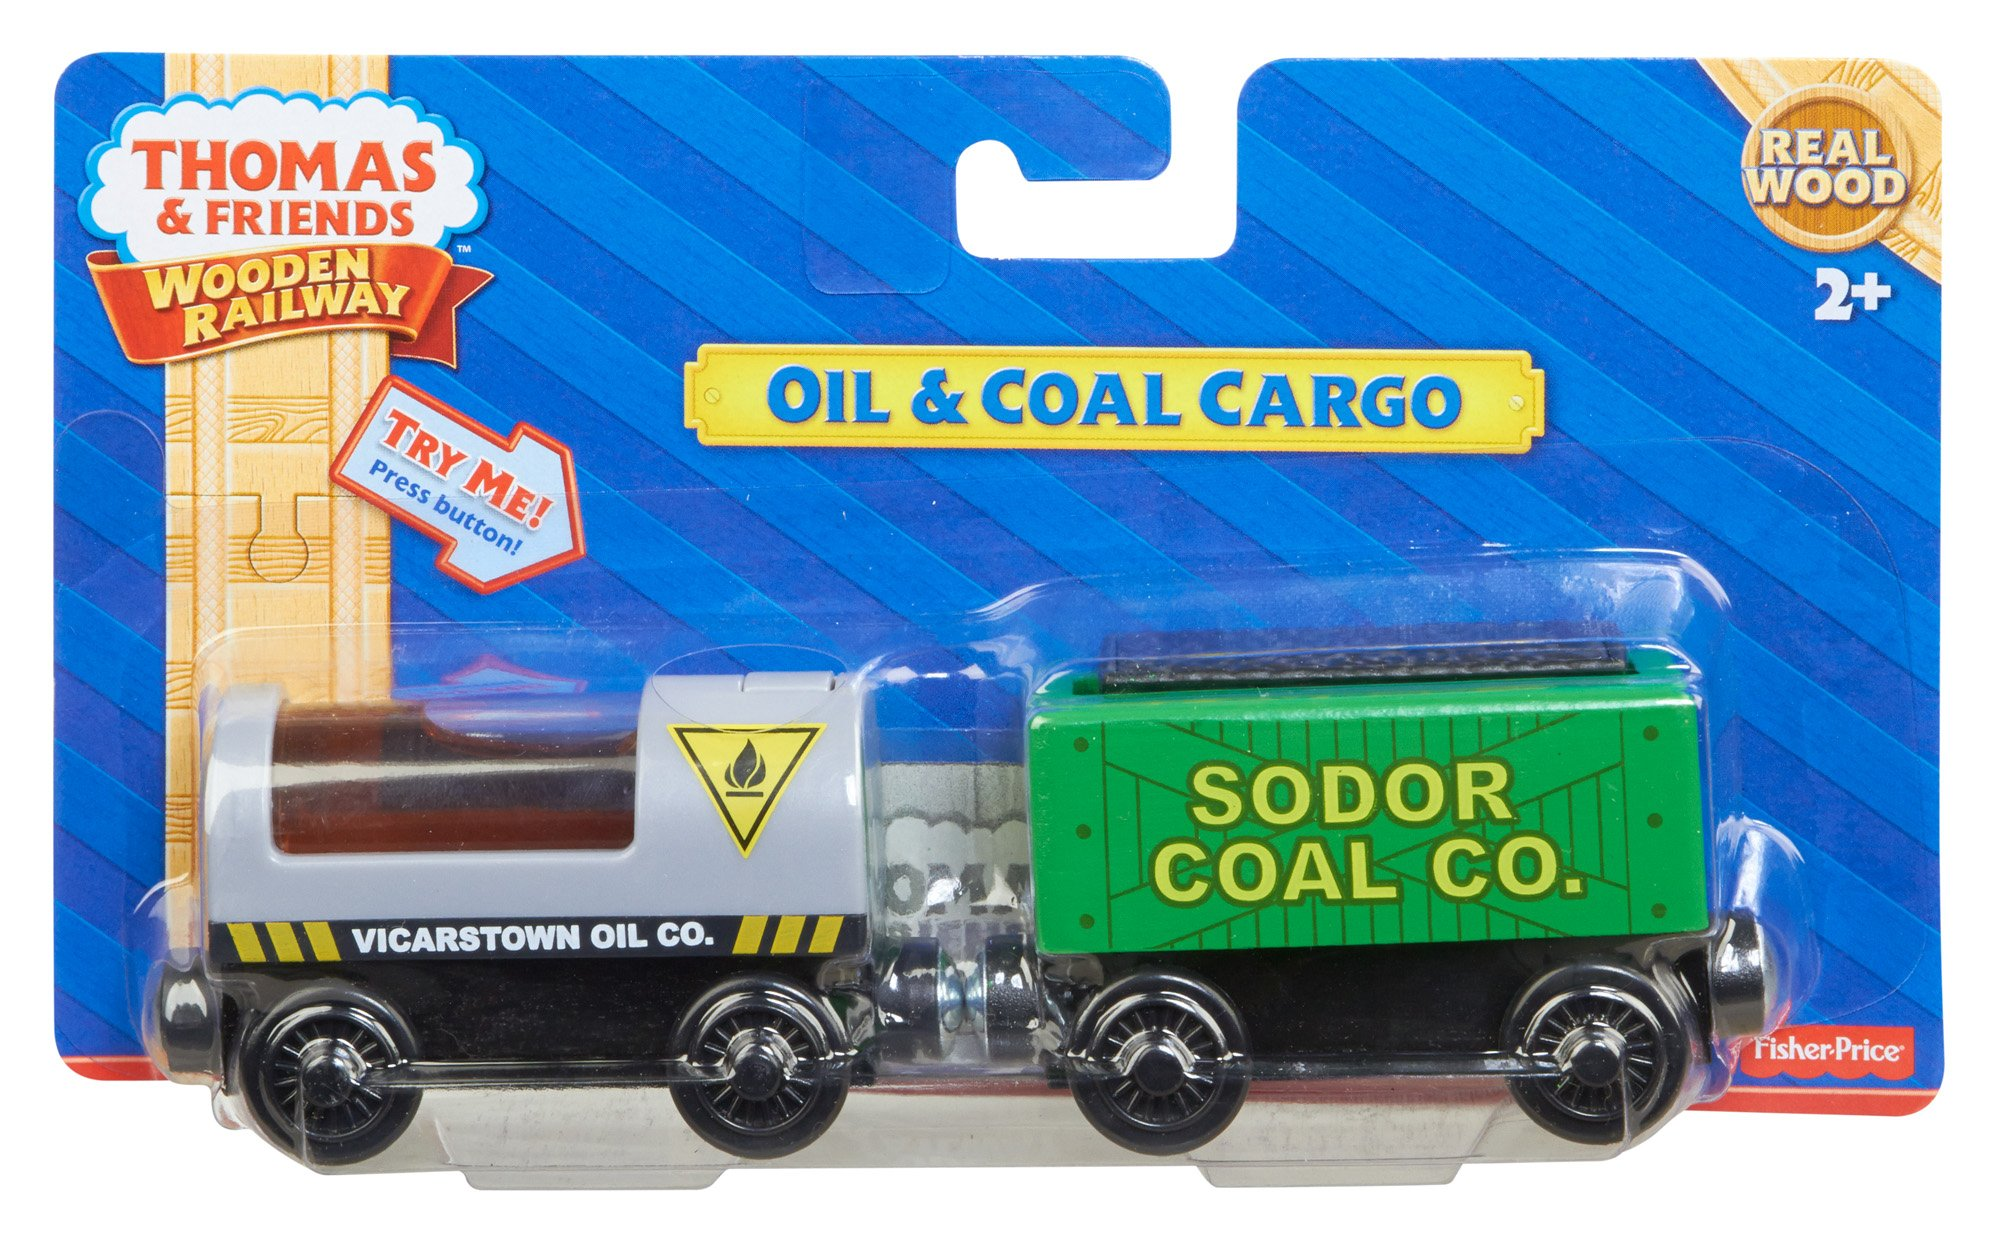 Thomas & Friends Fisher-Price Wooden Railway, Oil and Coal Cargo